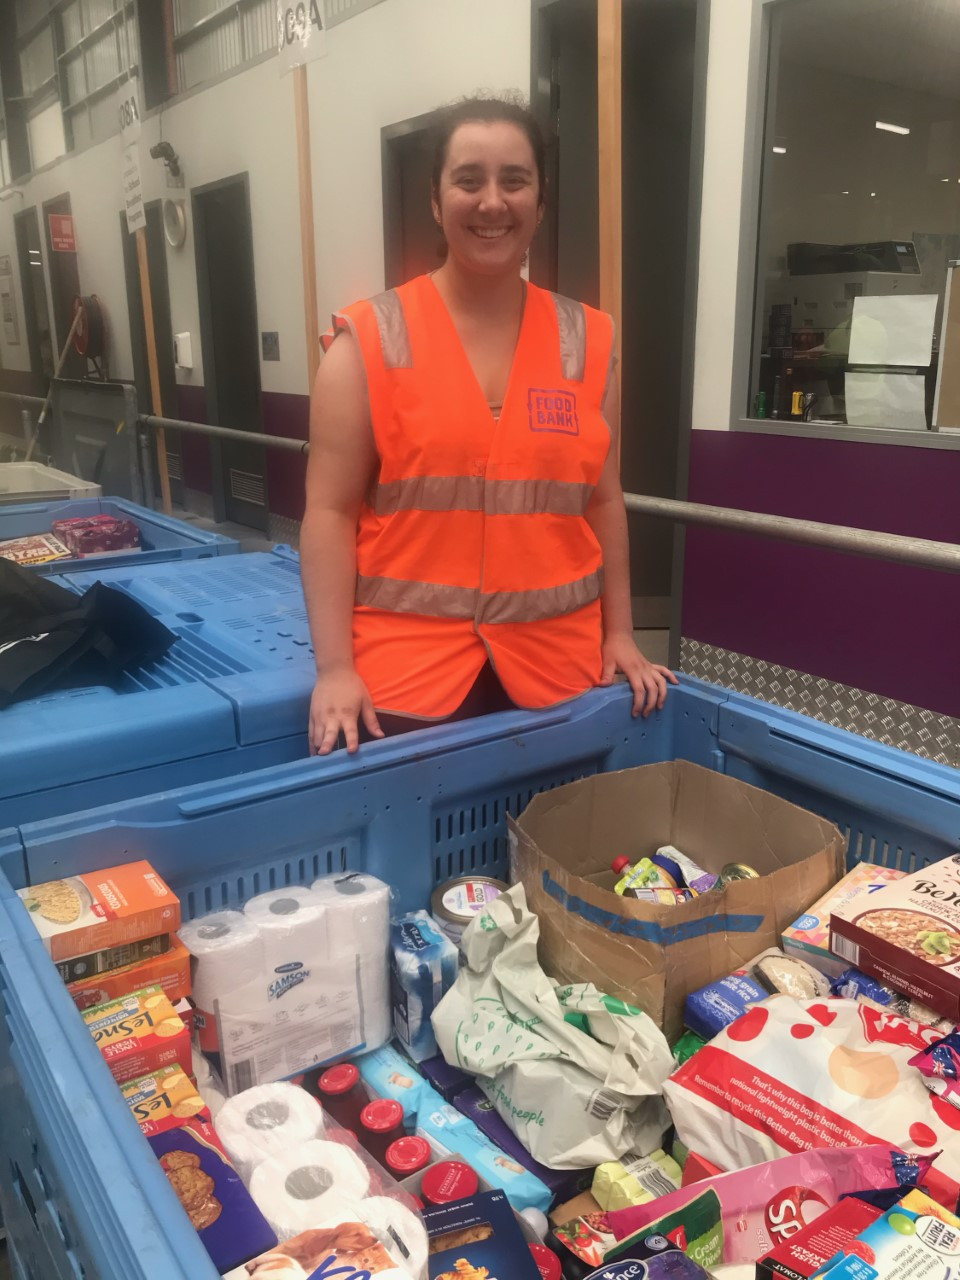 Me packing an industrial bin for bushfire relief donations. Foodbank NSW/ACT Warehouse, Glendenning NSW, January 2020.